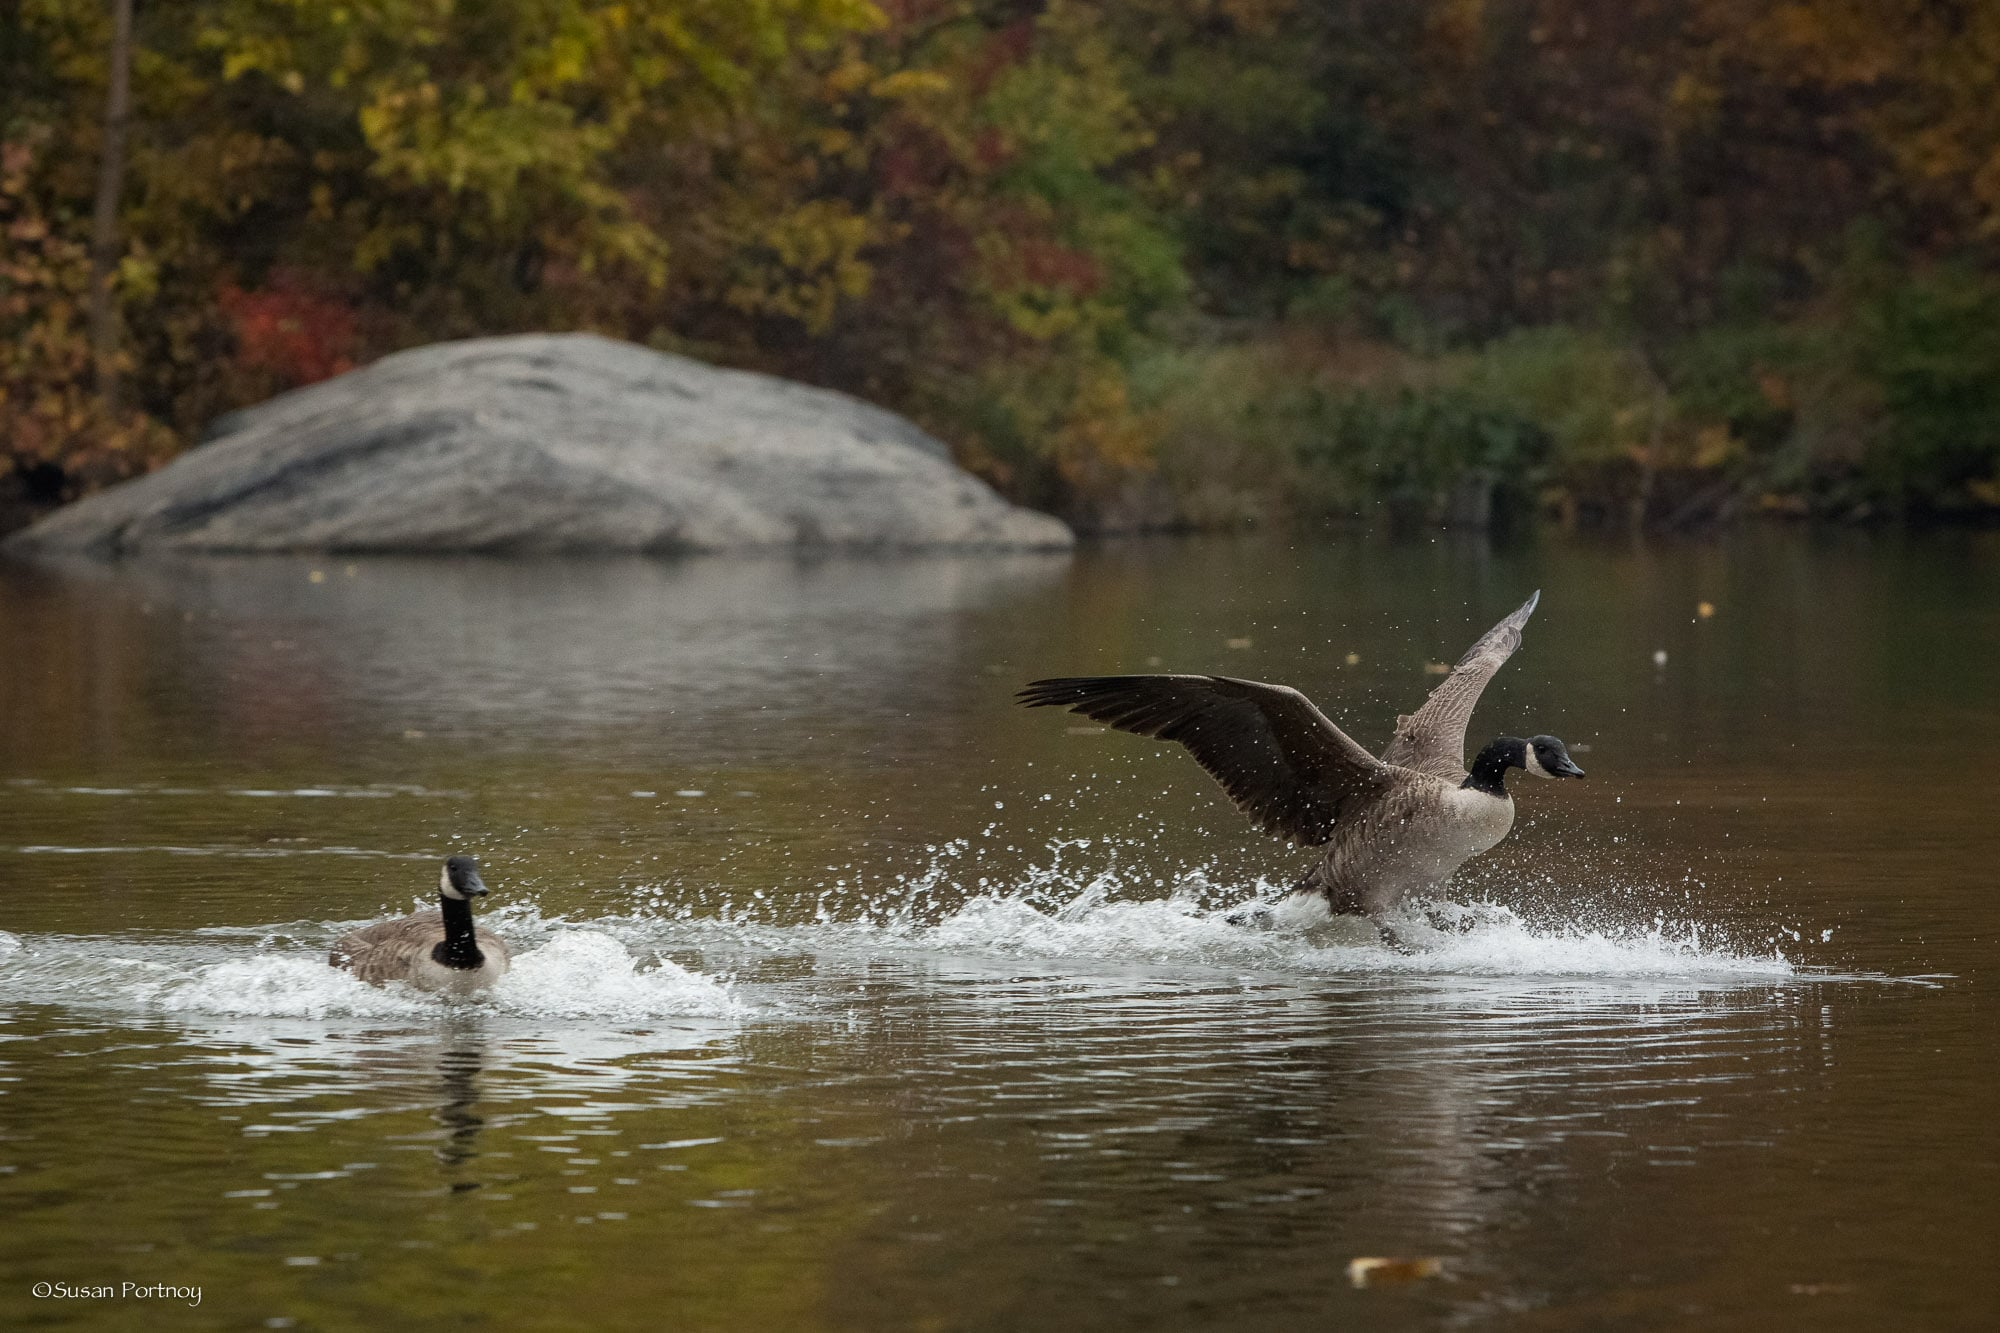 Goose lands on the water in Central Park